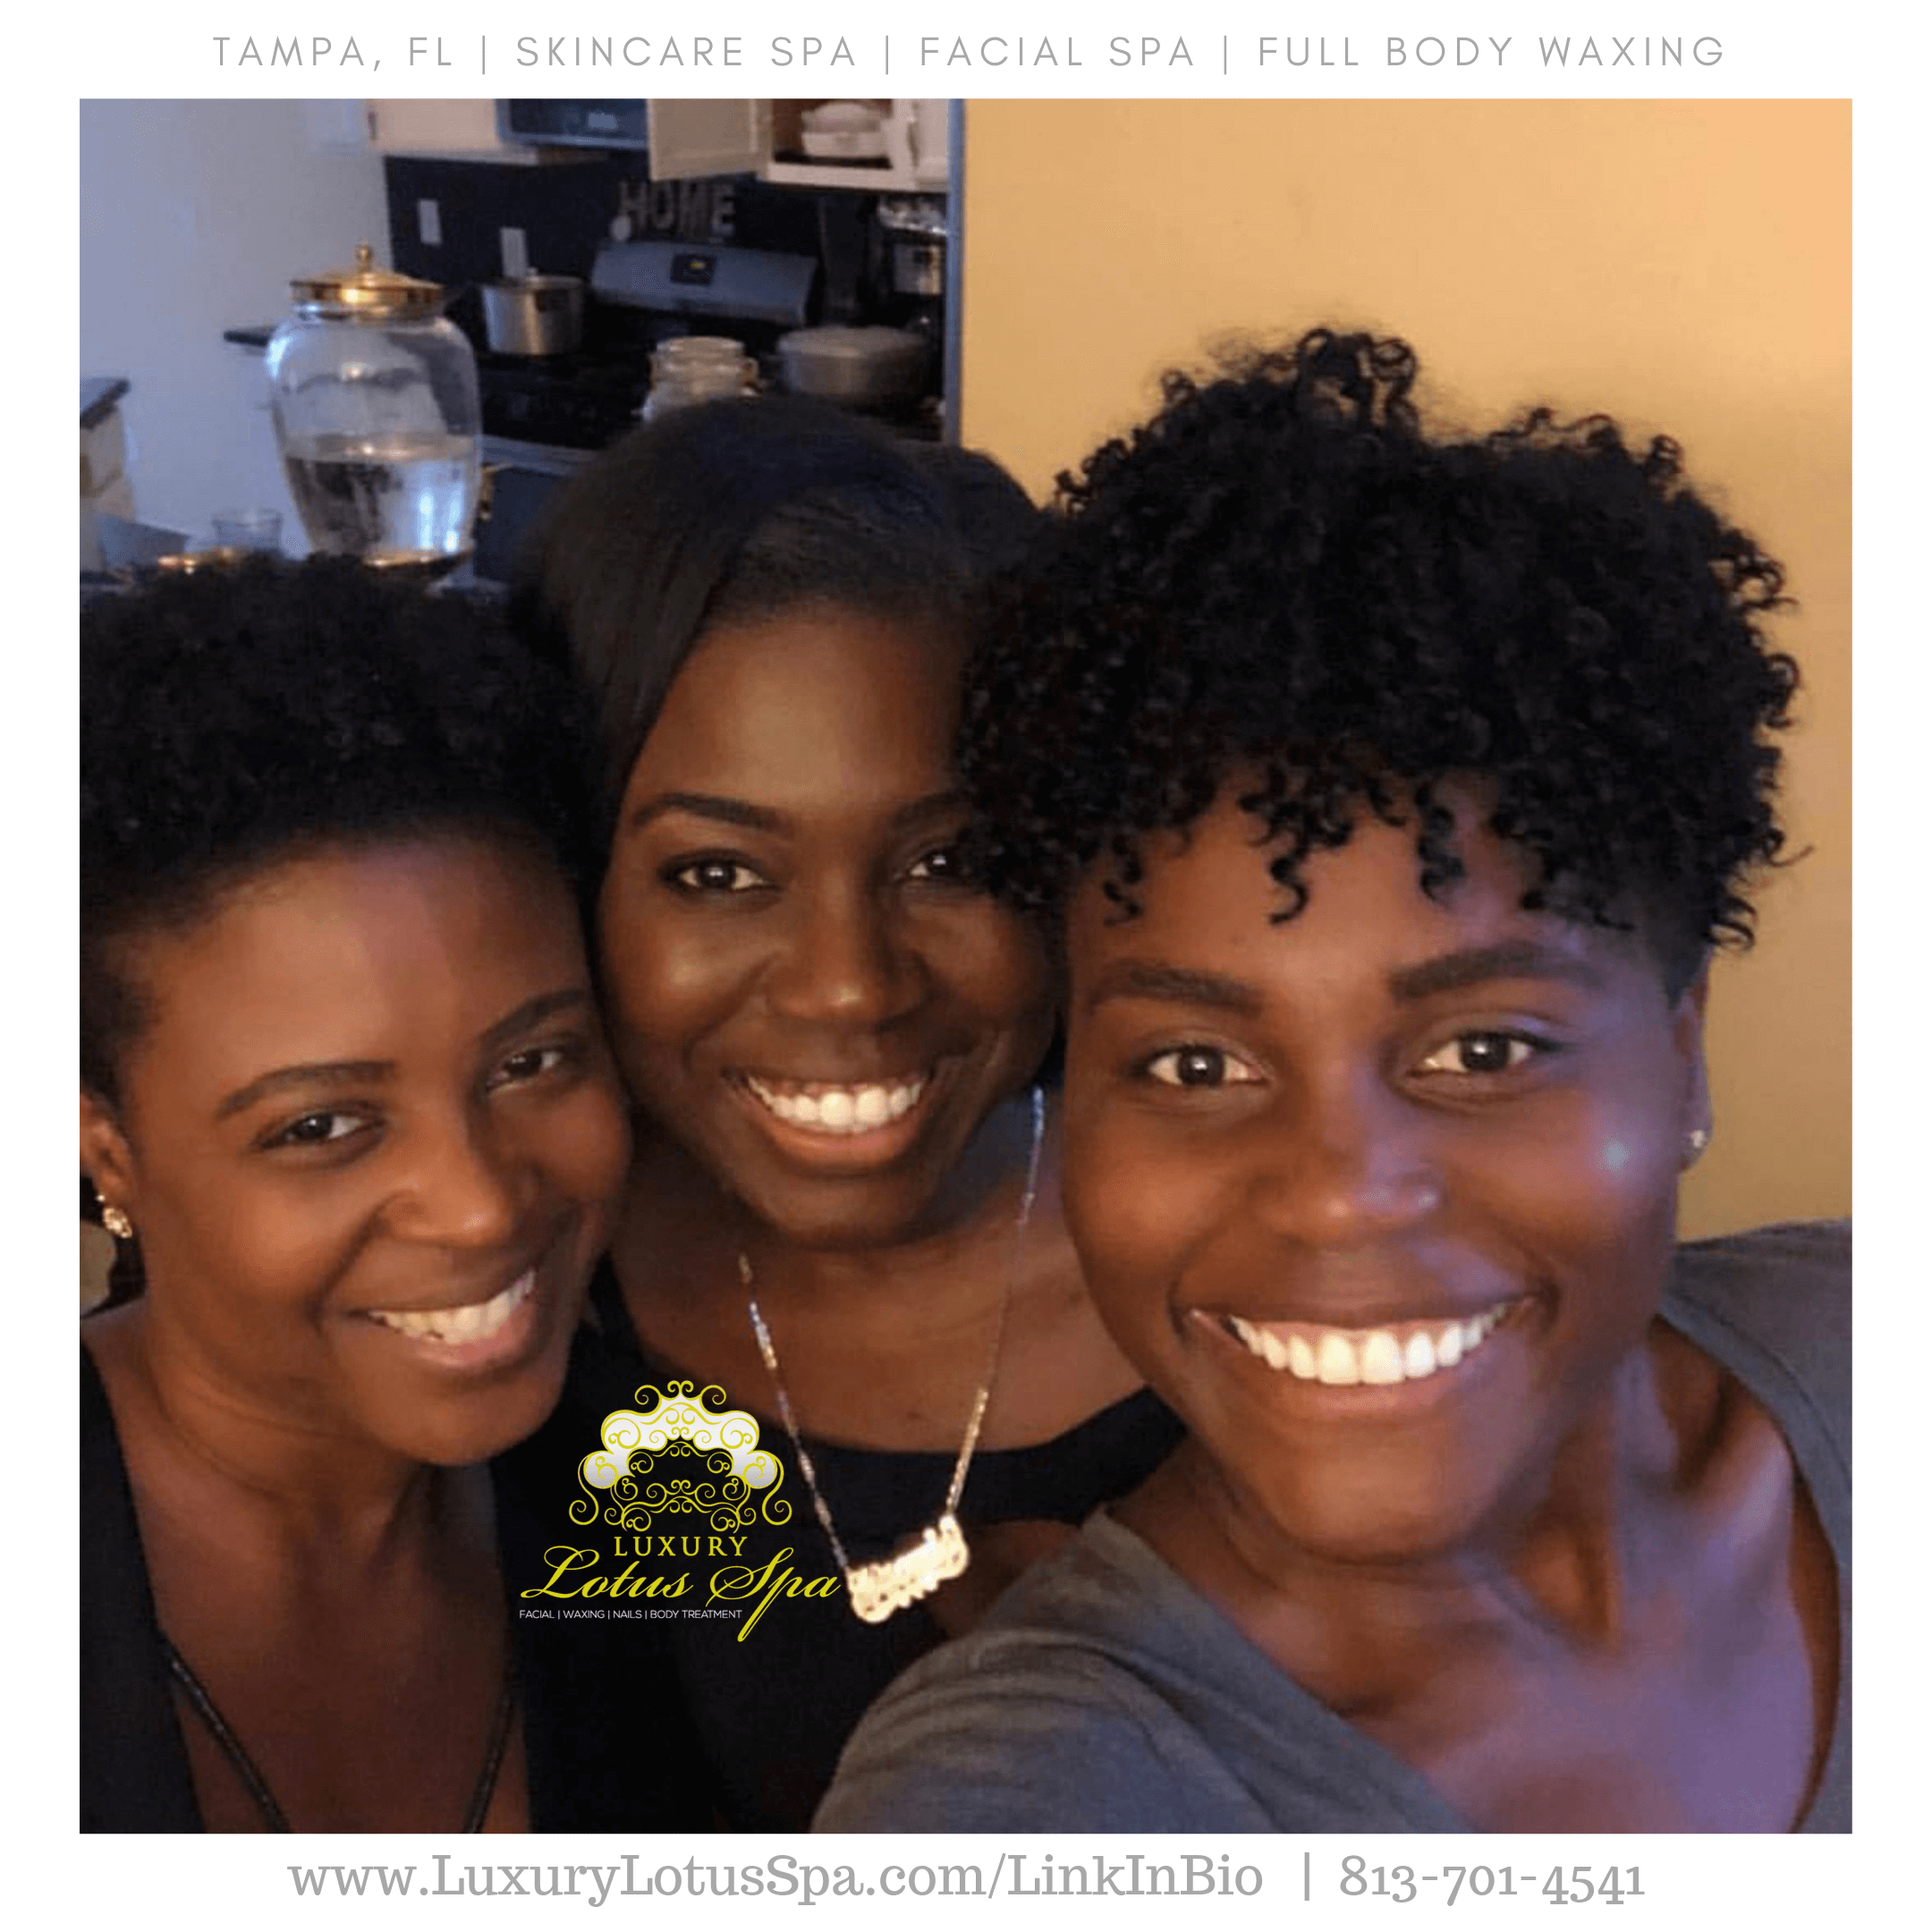 how to clear up acne and acne scars with chemical peels for darker skin women, Meet your Favorite EstherTheEsthetician FOR LUXURY LOTUS SPA in Tampa, Florida. ™Luxury Lotus Spa